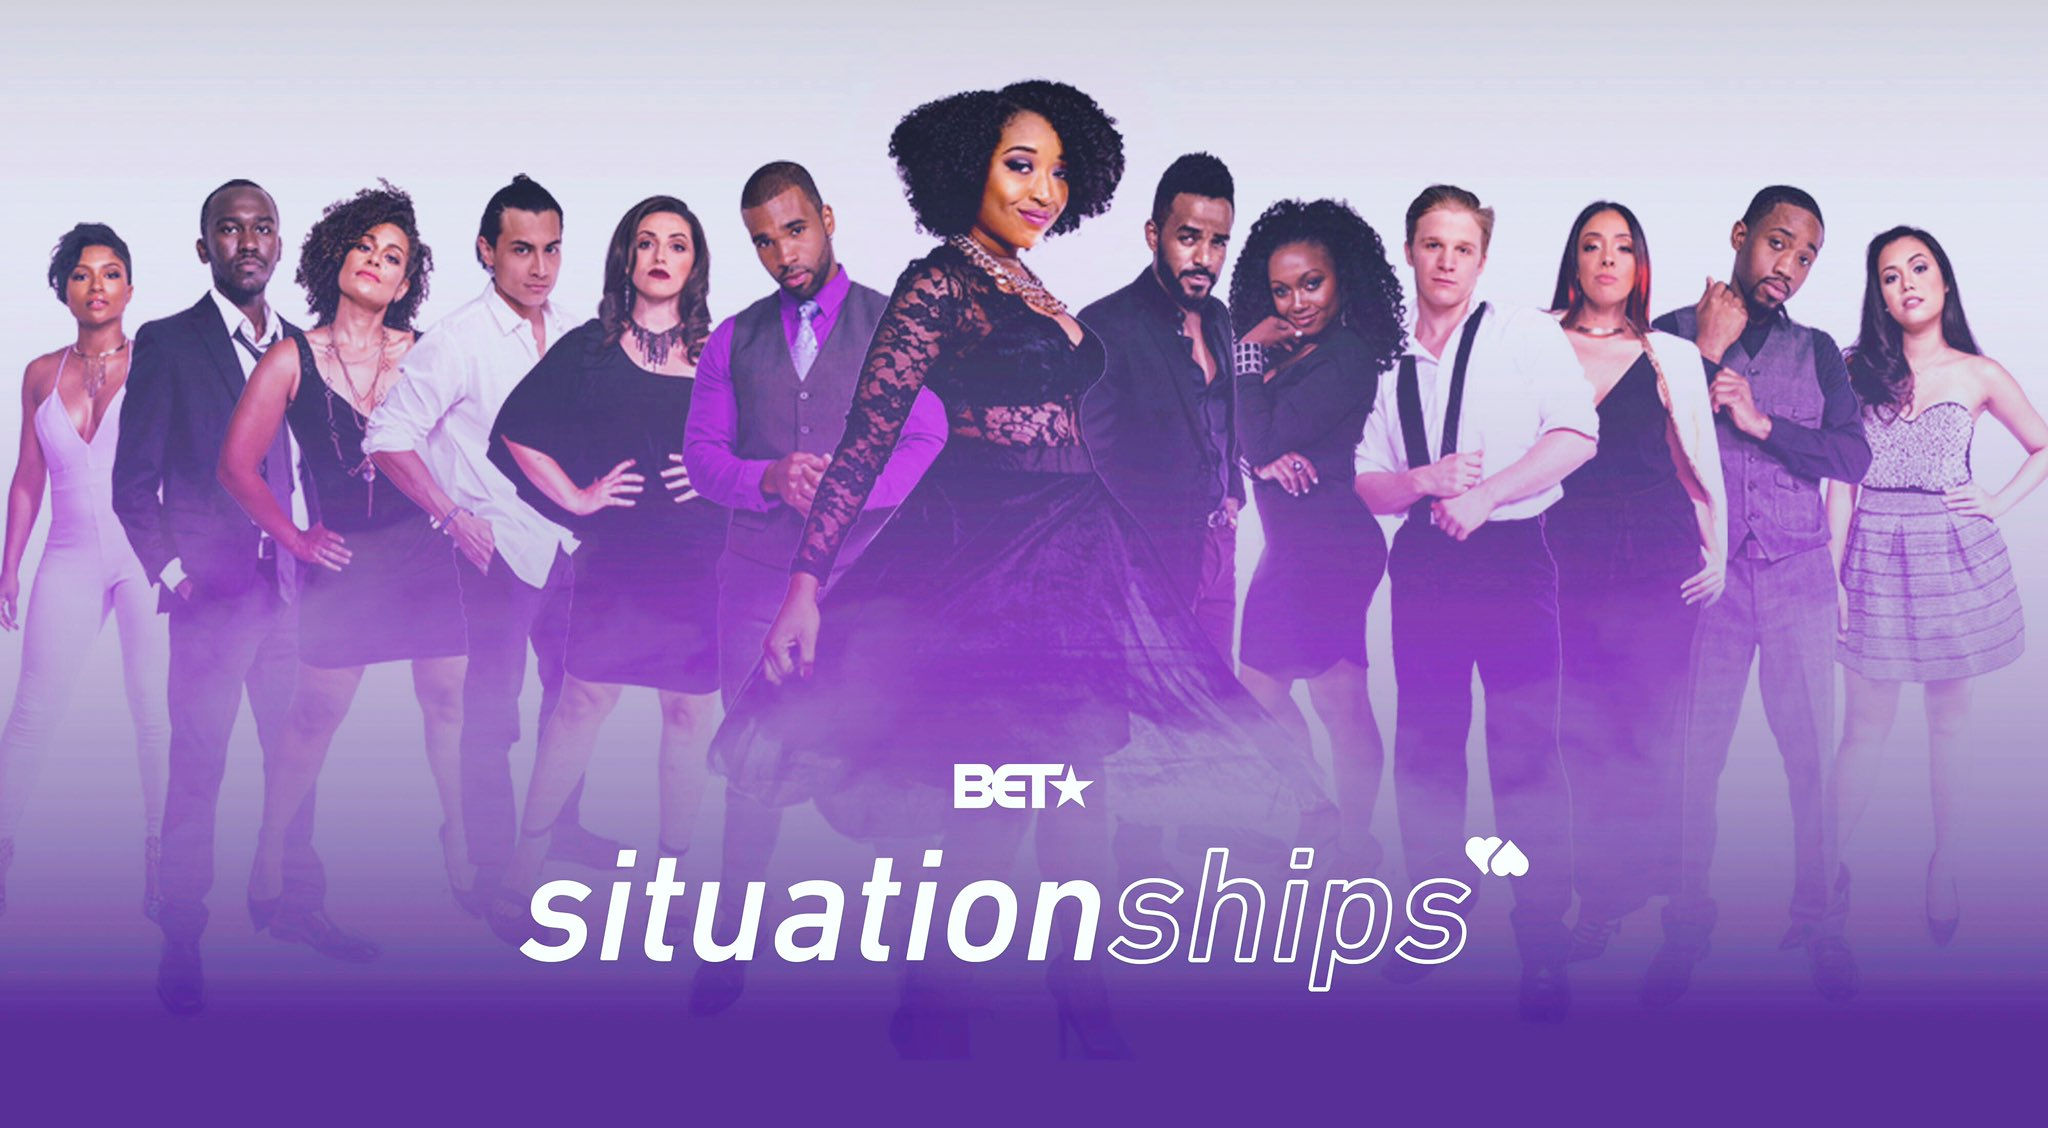 Situationships BET Poster.jpg